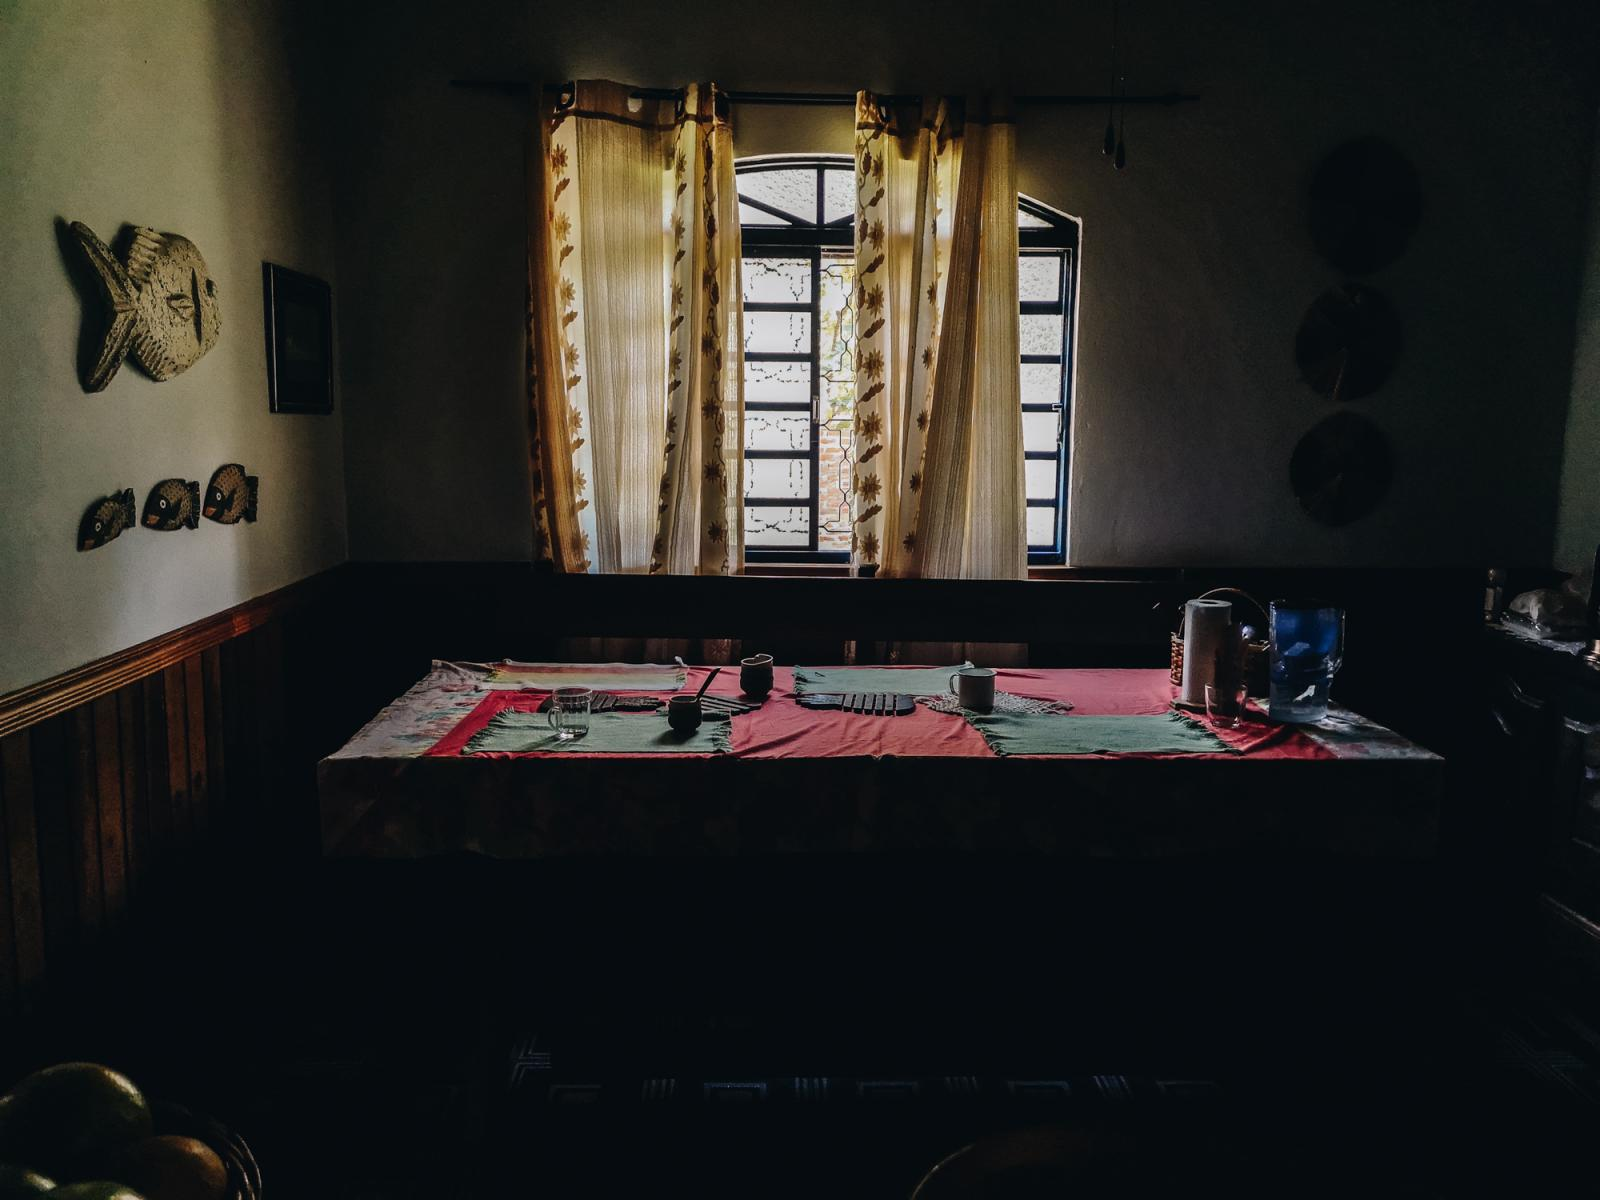 The empty kitchen of our house on the 4th day of the official lockdown in the city. Since day one, I've been work more like a farmer and forcing myself to keep a visual diary. Photography helps me look at my routine, observe my daily life, even admire the small things of my life.